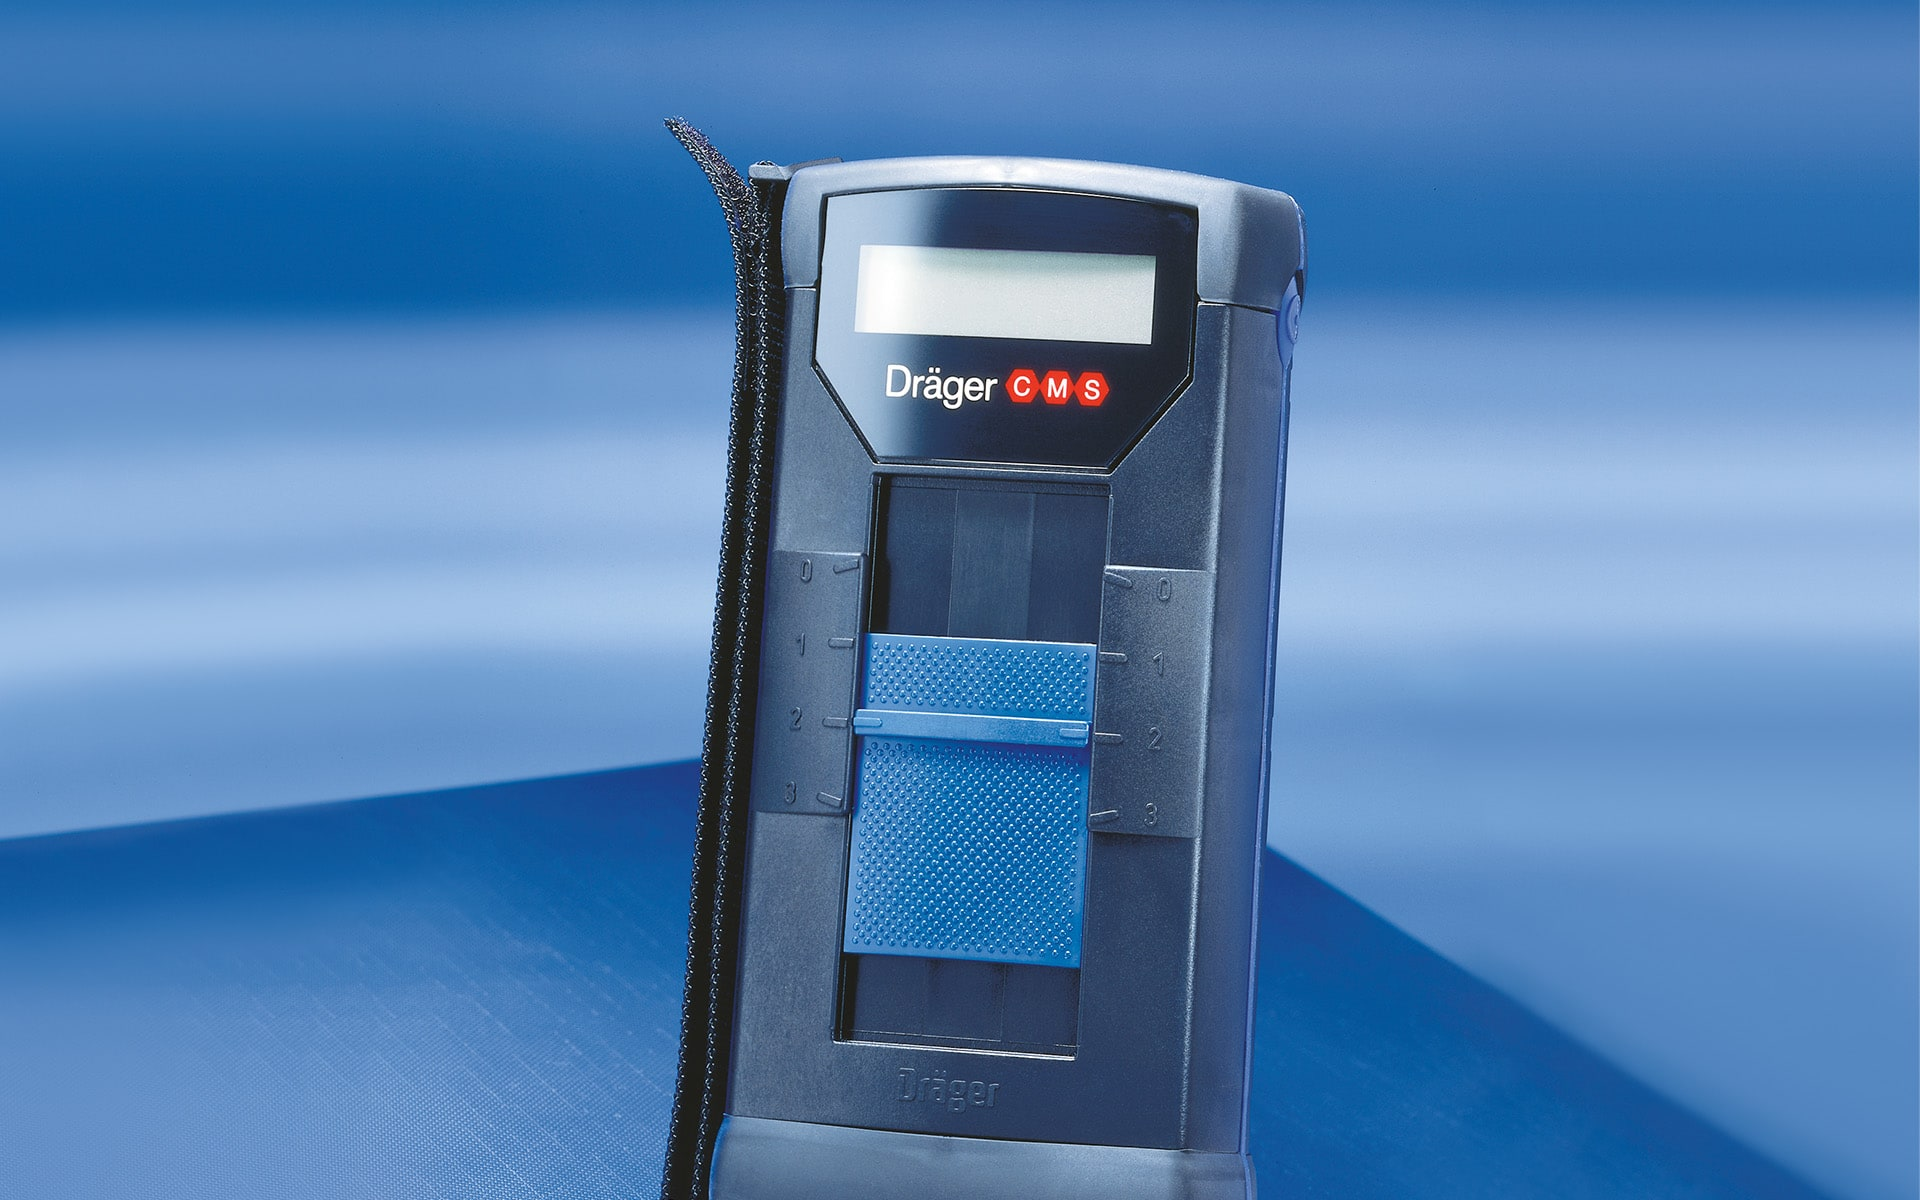 Dark blue Gas meter for Dräger Germany by ITO Design, created in 1994